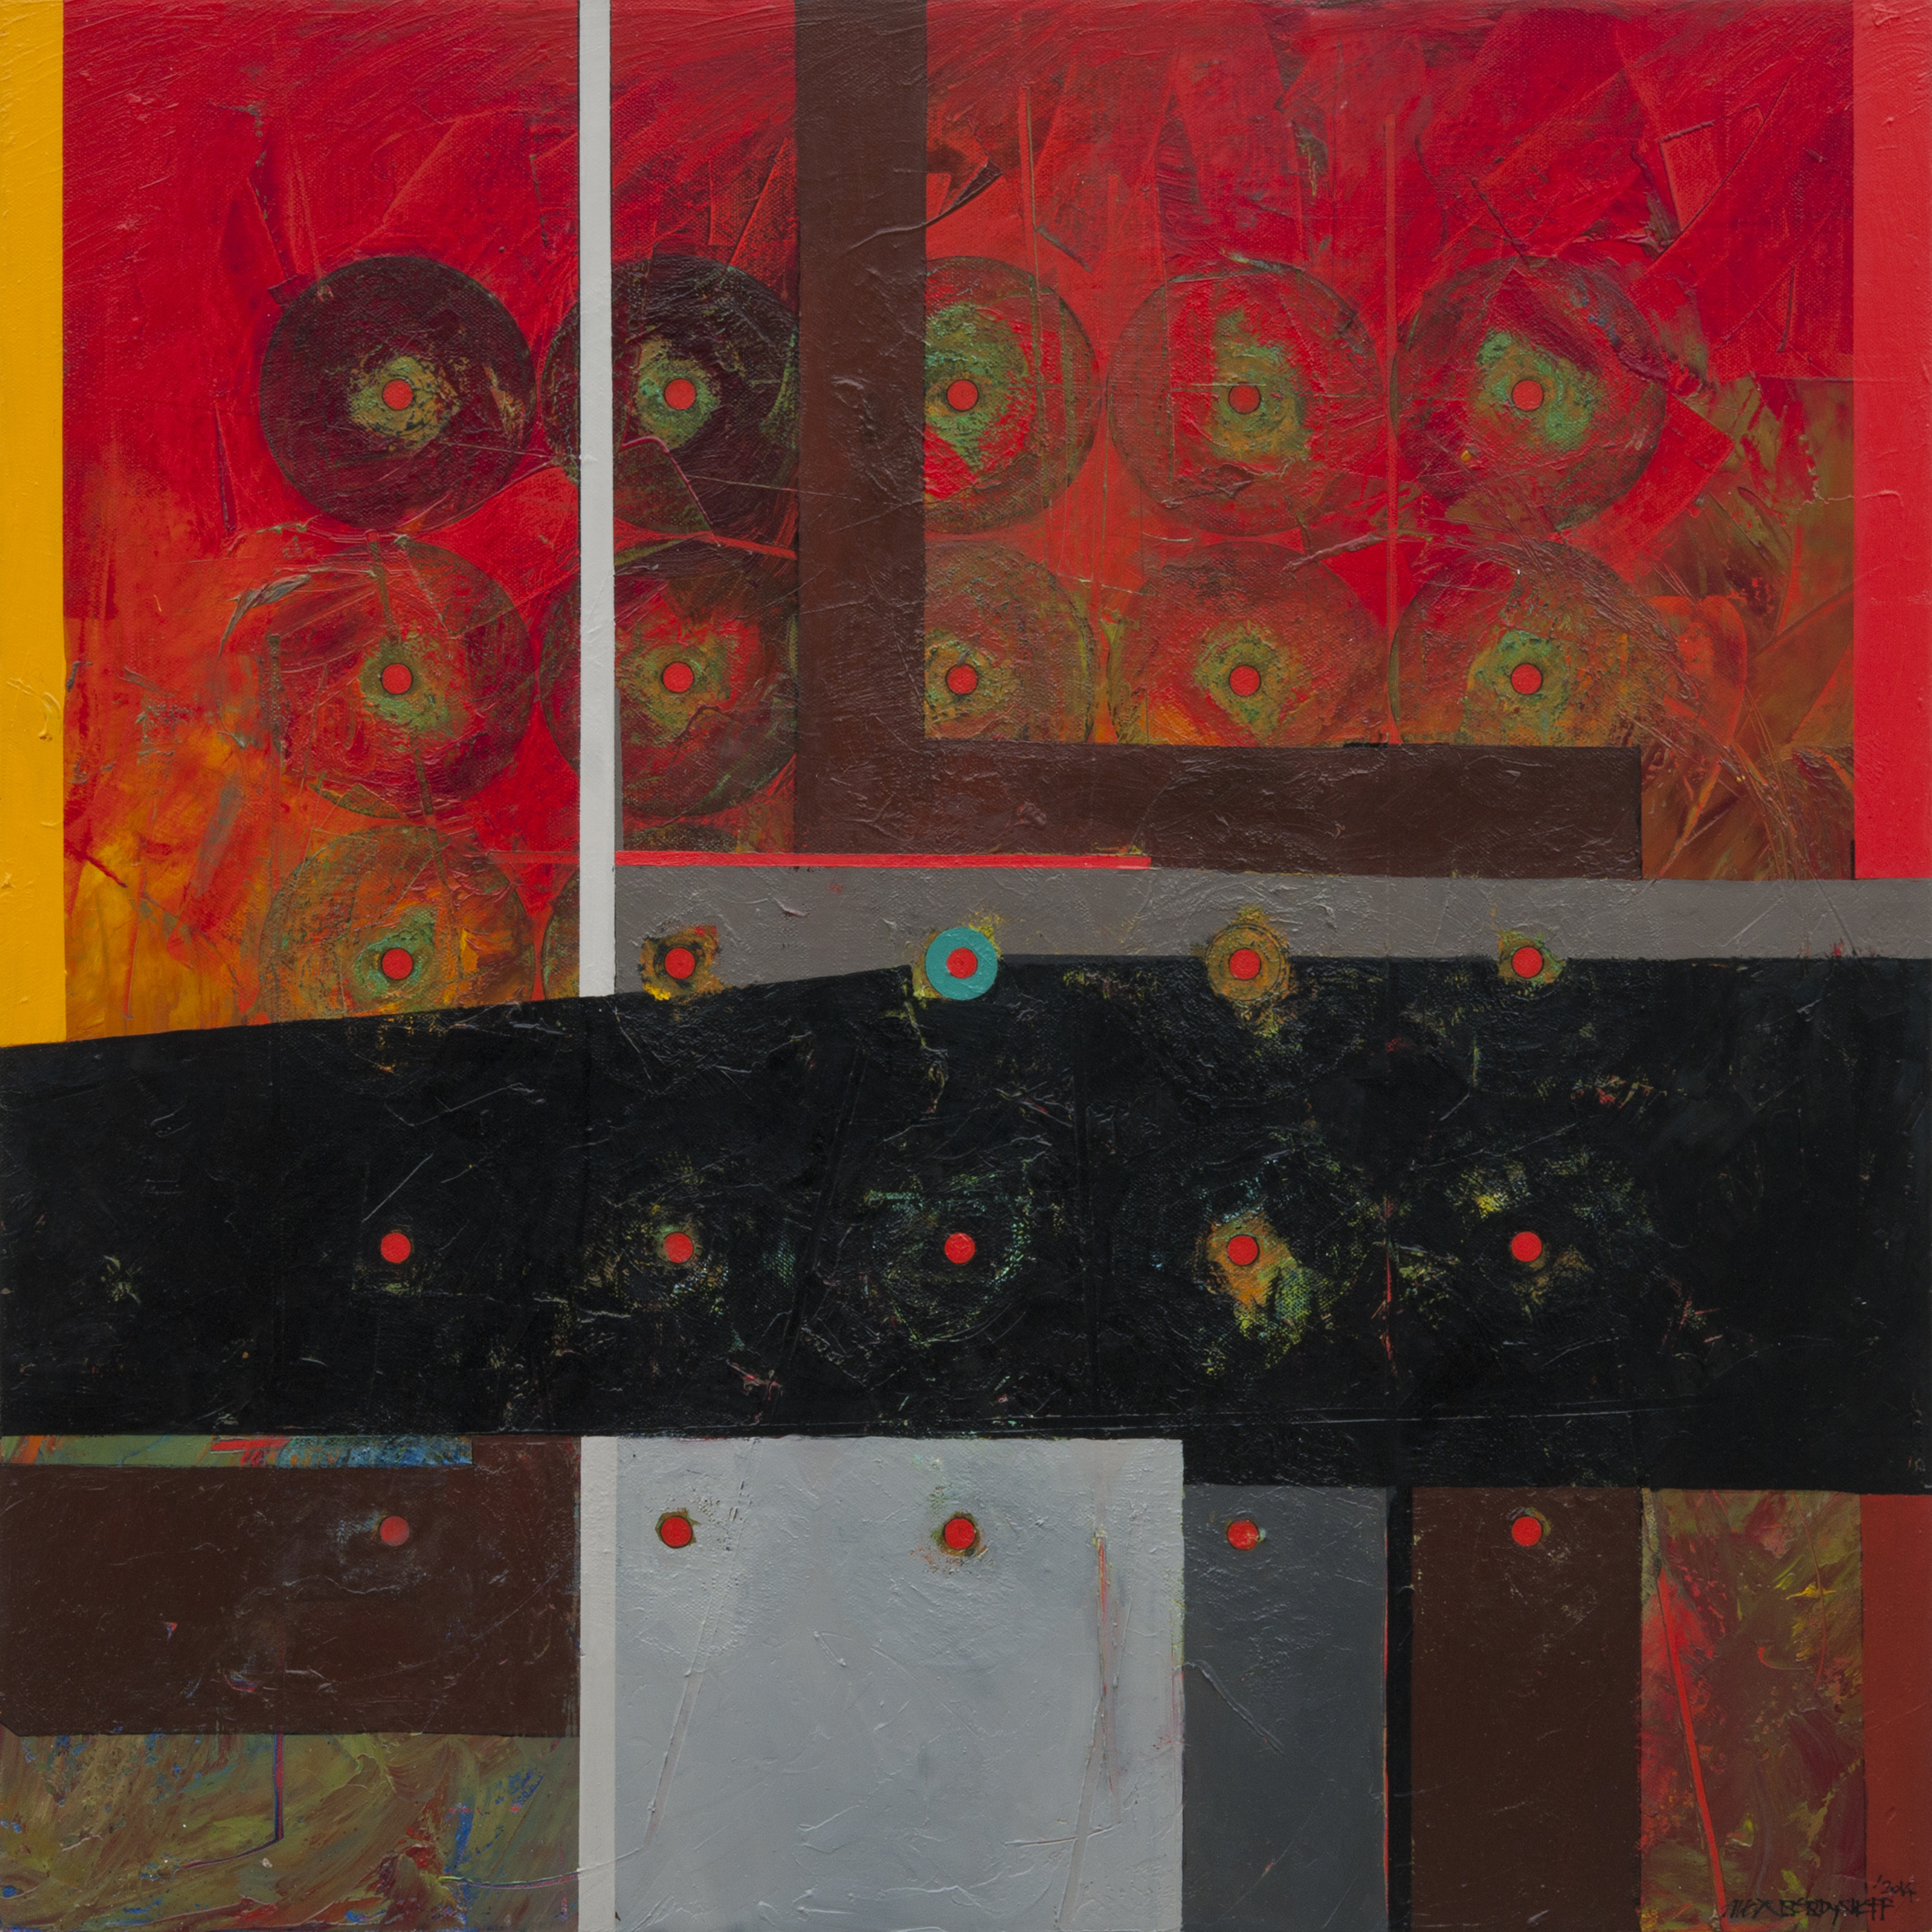 Structure of Chaos II, oil on canvas, 85x85 cm, 2014